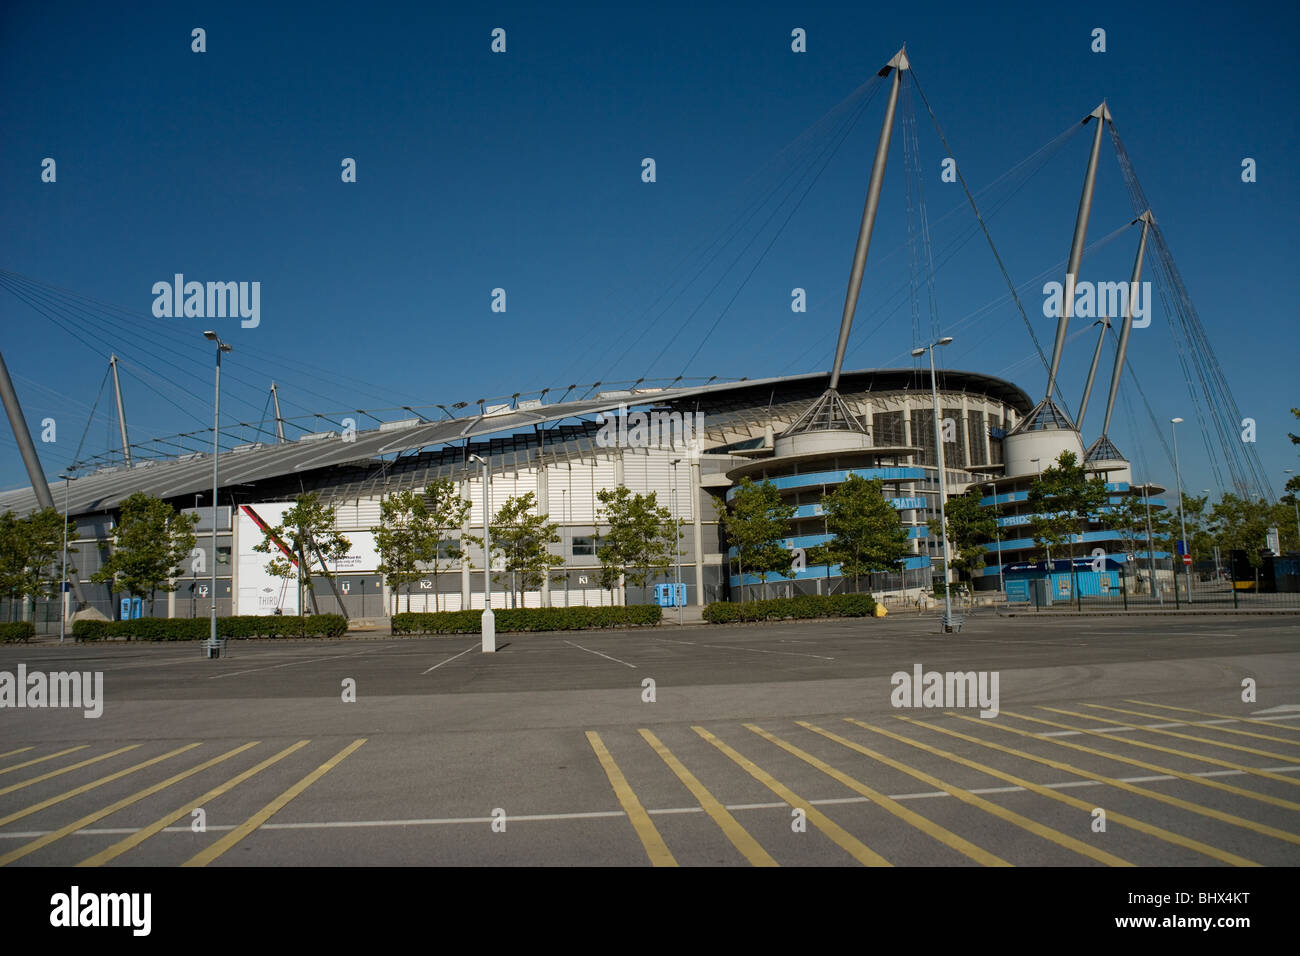 Manchester City Football Club stadium at the Eastlands complex in Manchester - Stock Image